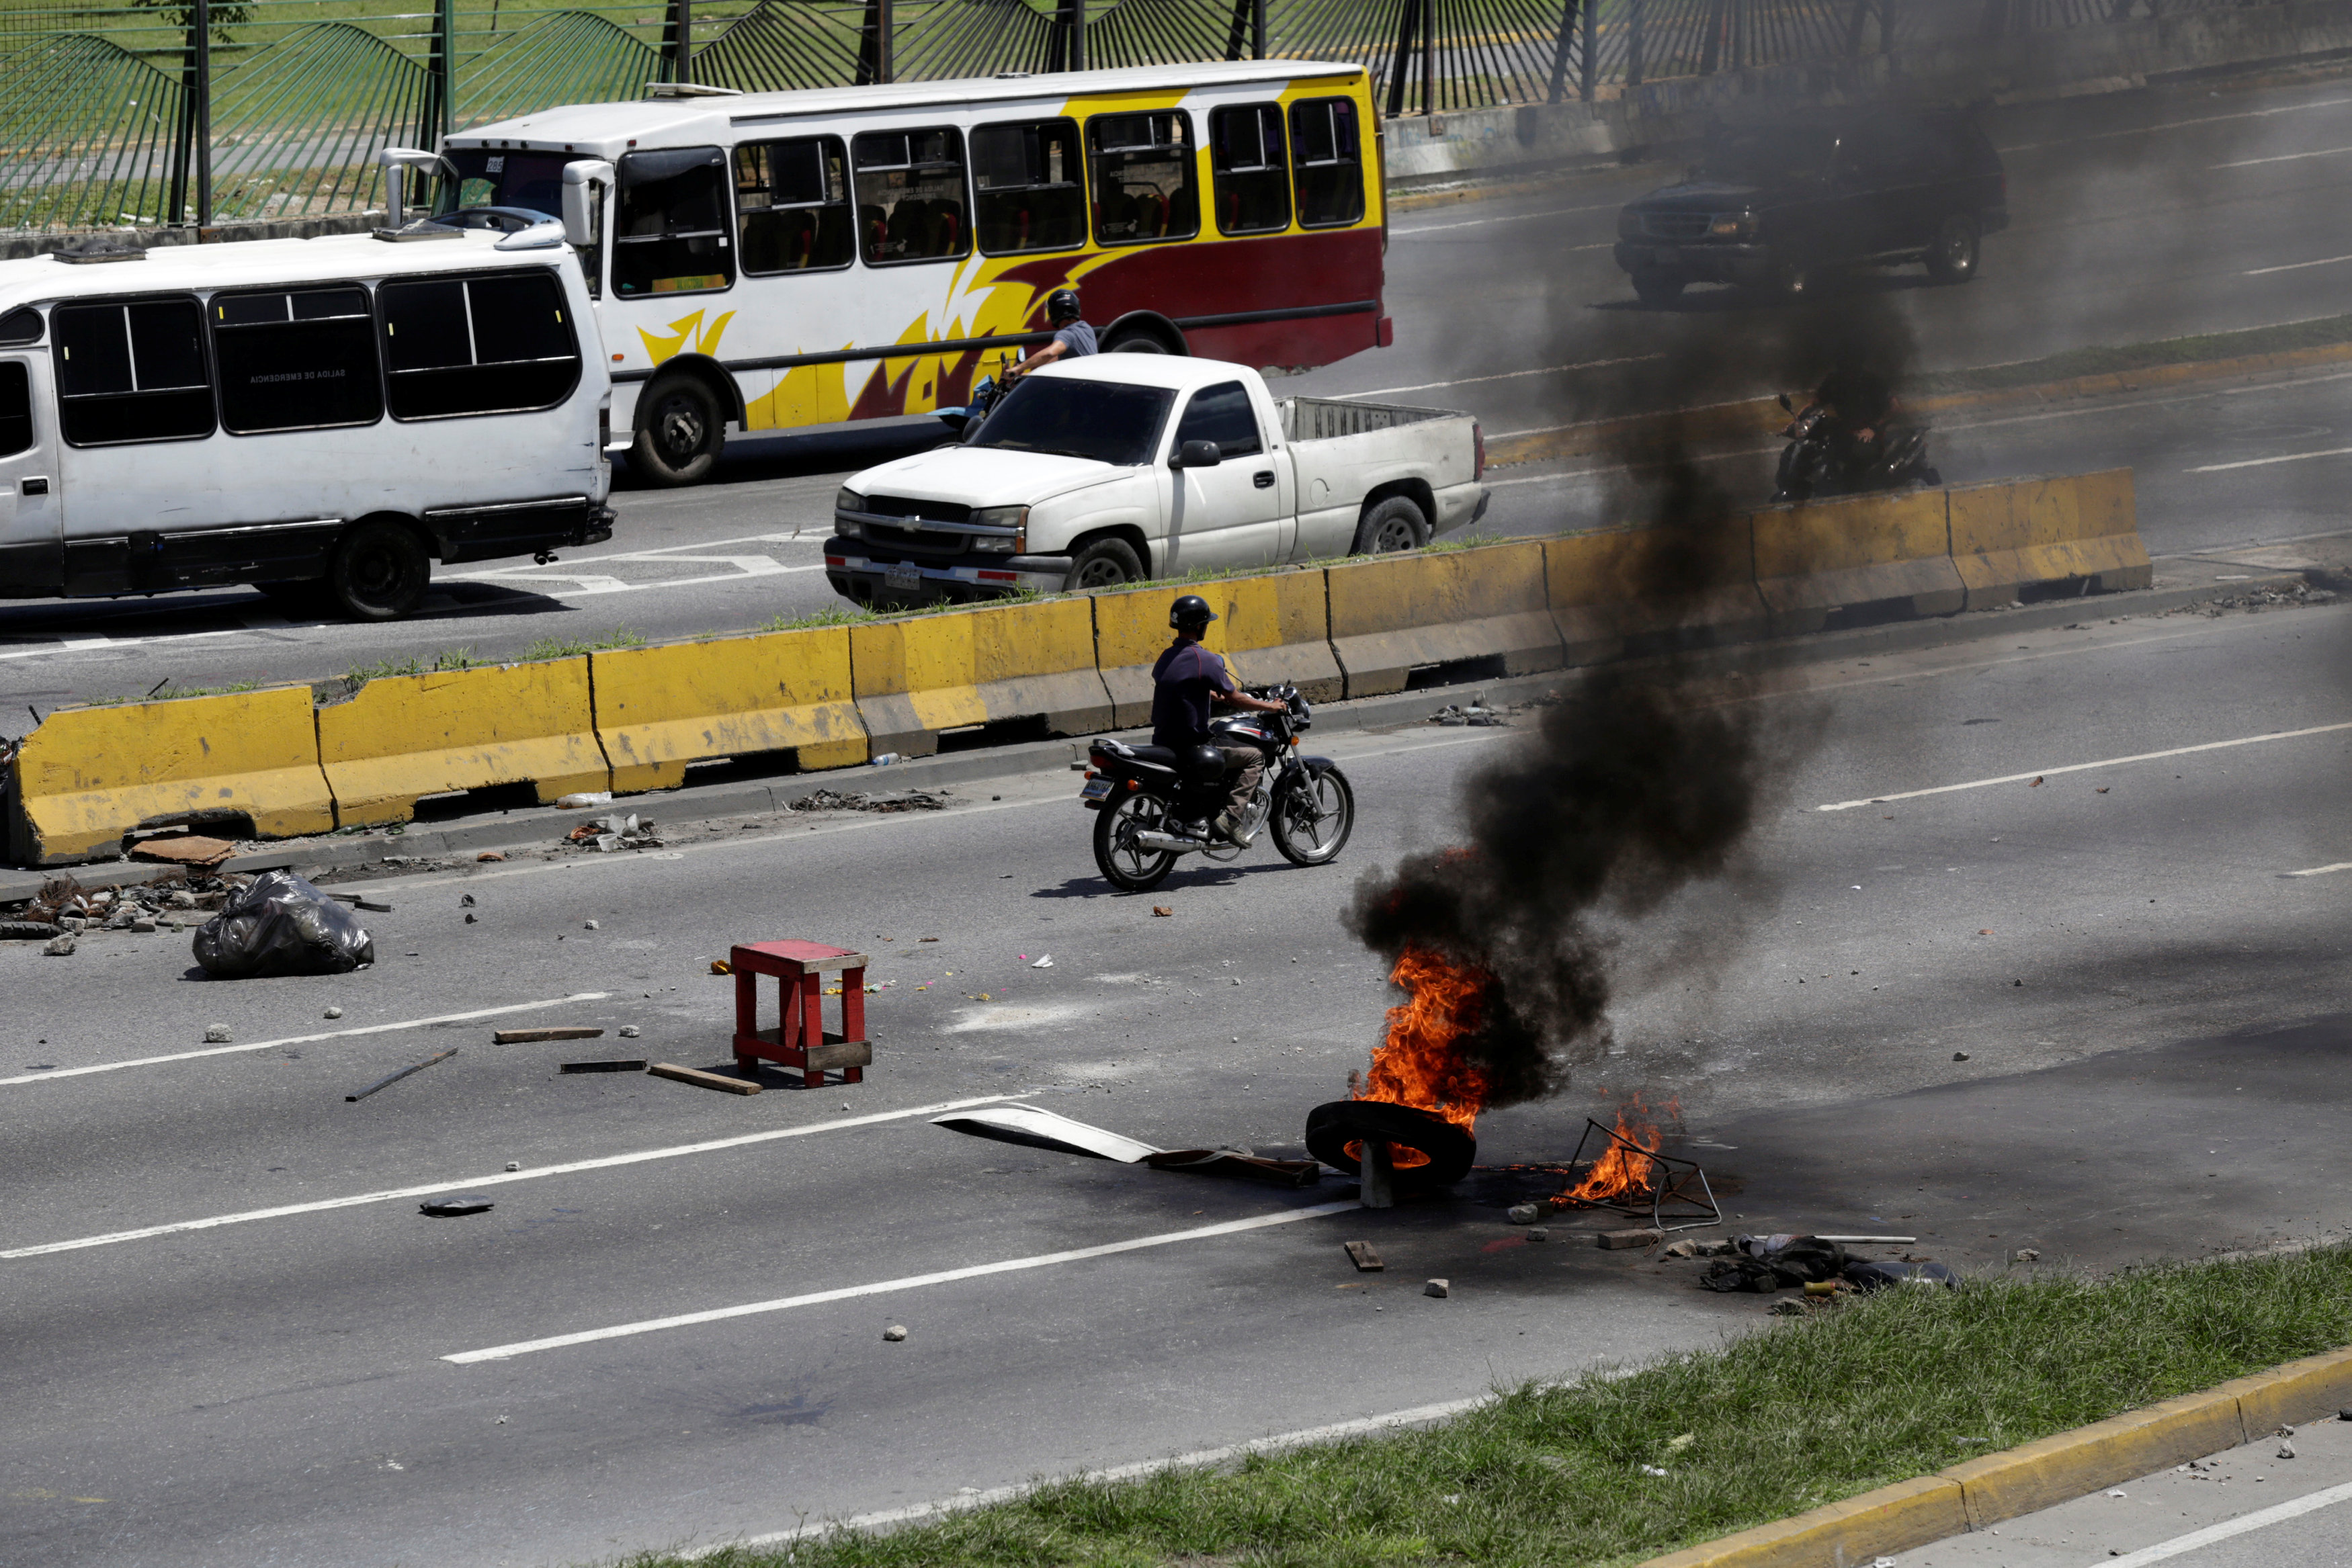 A man on a motorcycle rides near the remains of a fire barricade built by opposition supporters rallying against Venezuela's President Nicolas Maduro's government, in Caracas, Venezuela July 4, 2017. REUTERS/Marco Bello